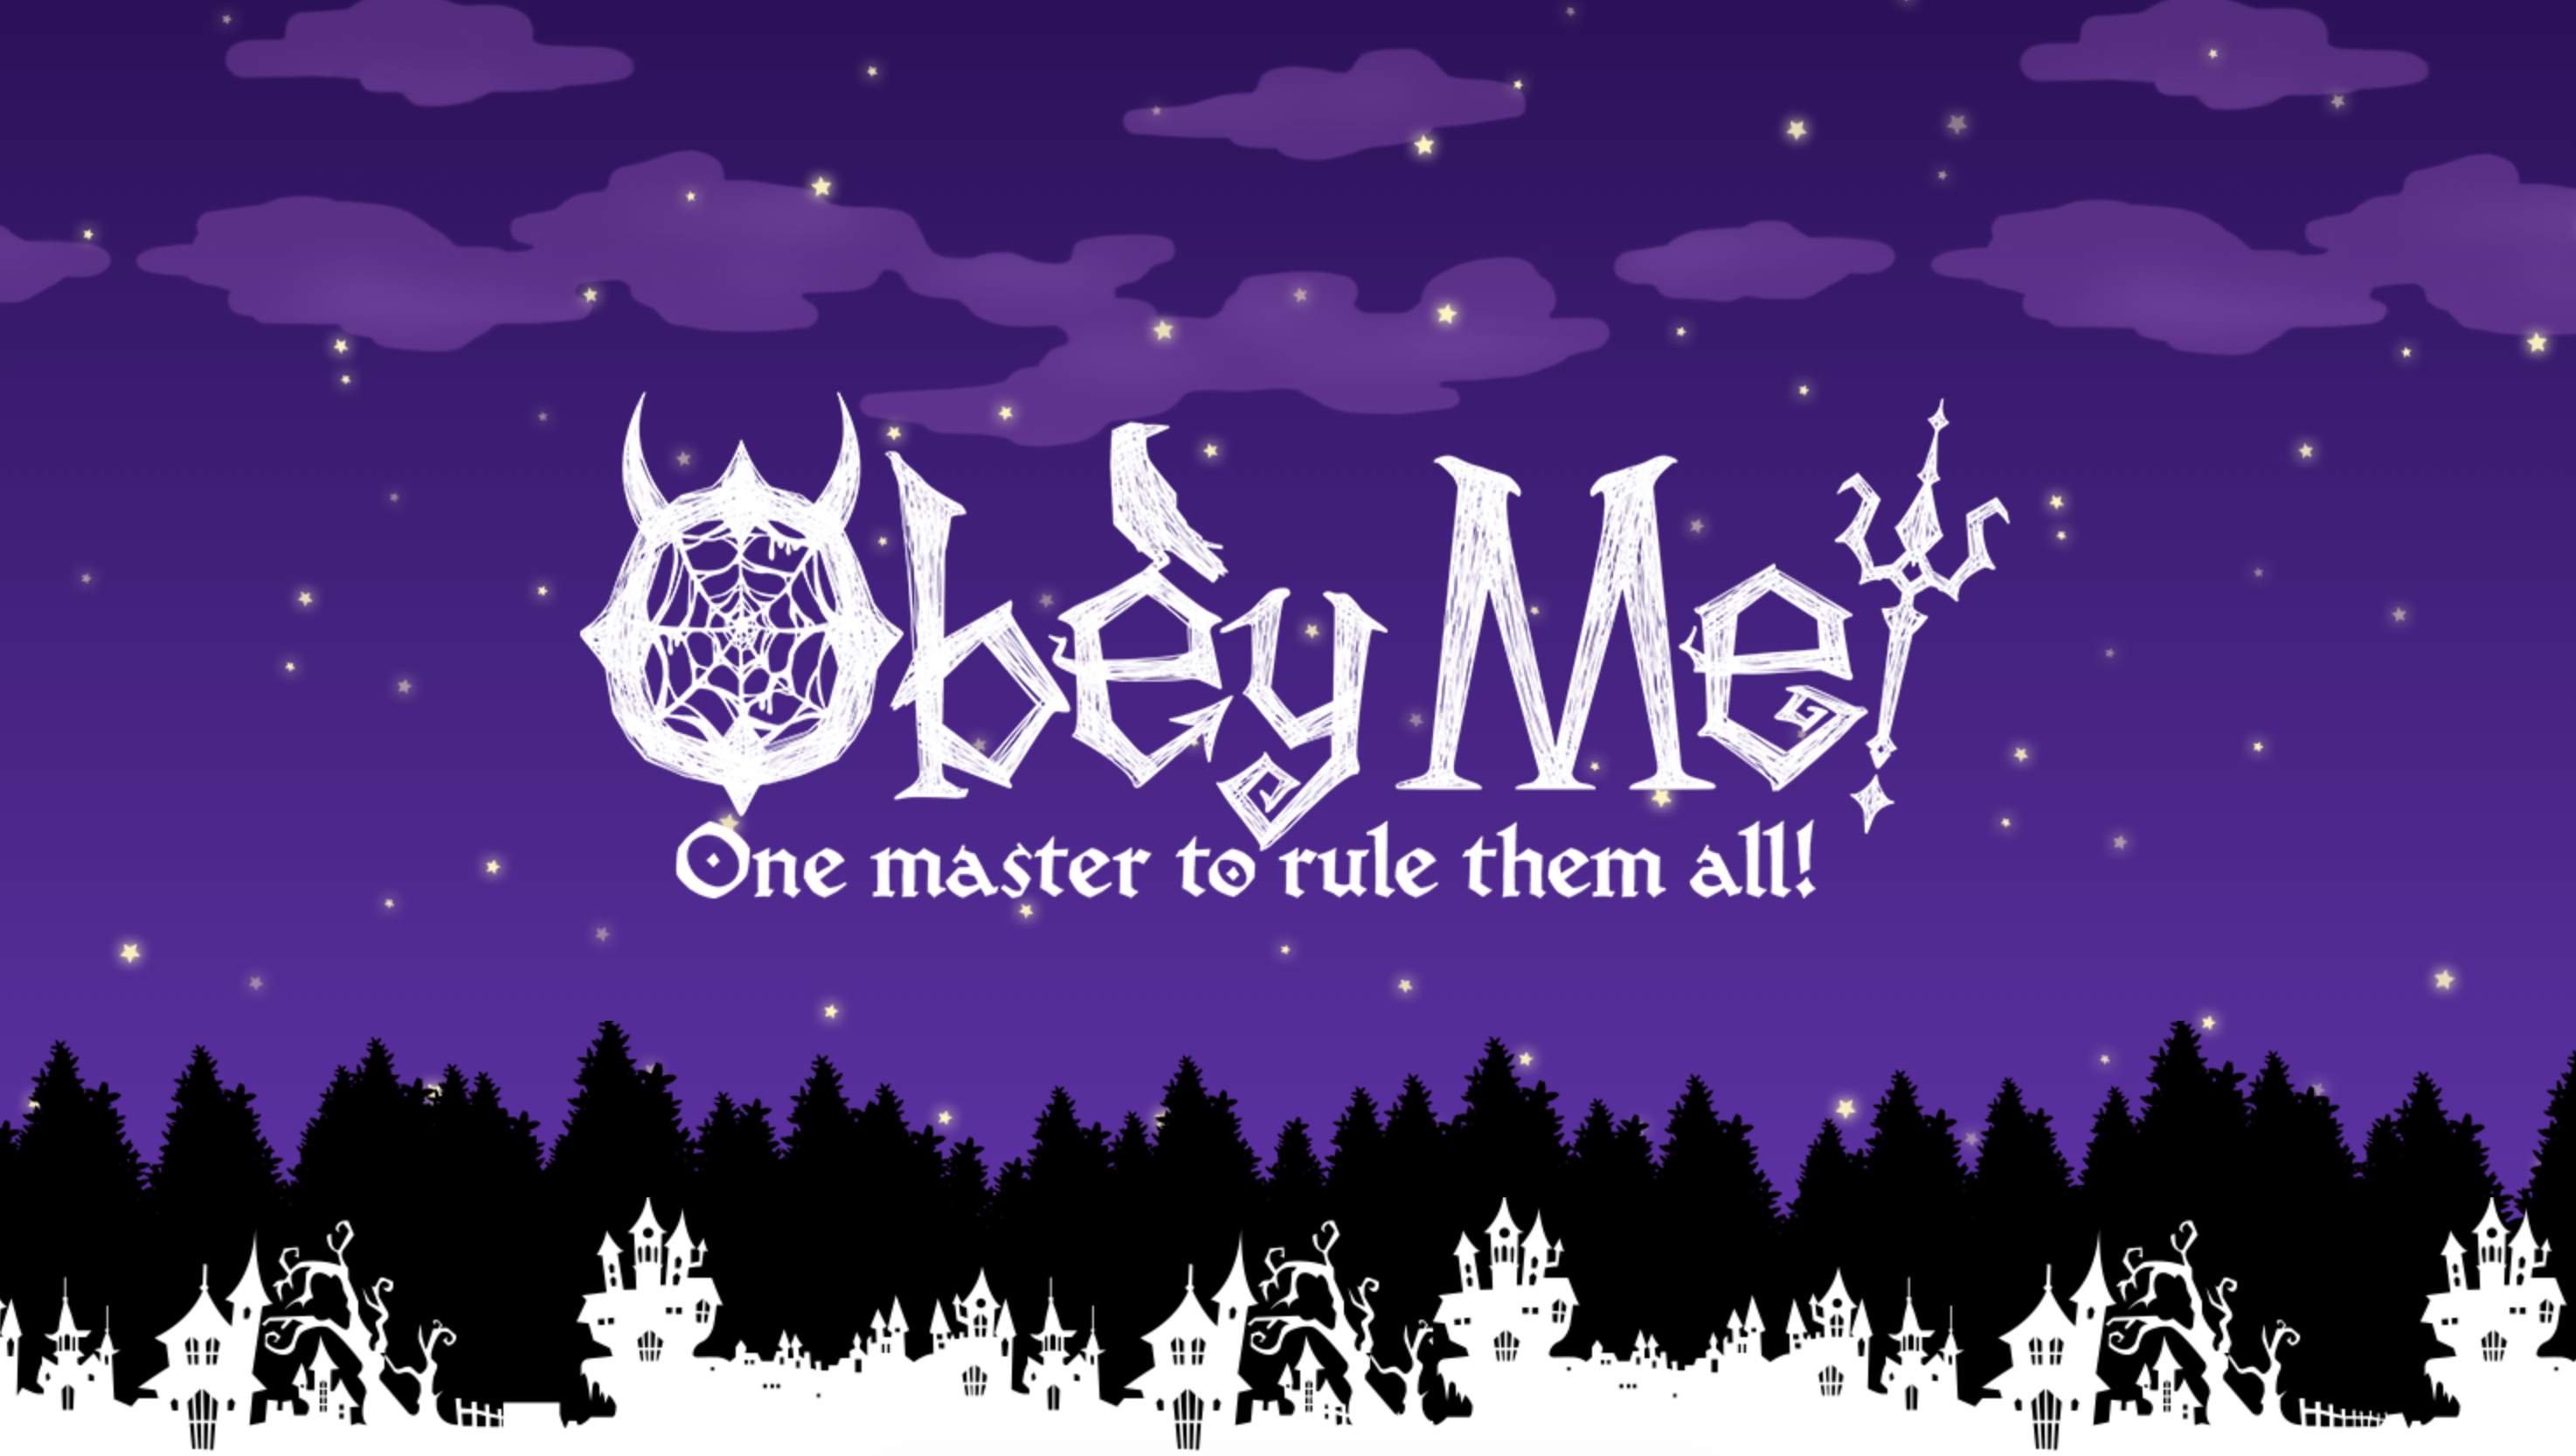 【Obey Me!】配信日・リリース日はいつ?事前登録情報